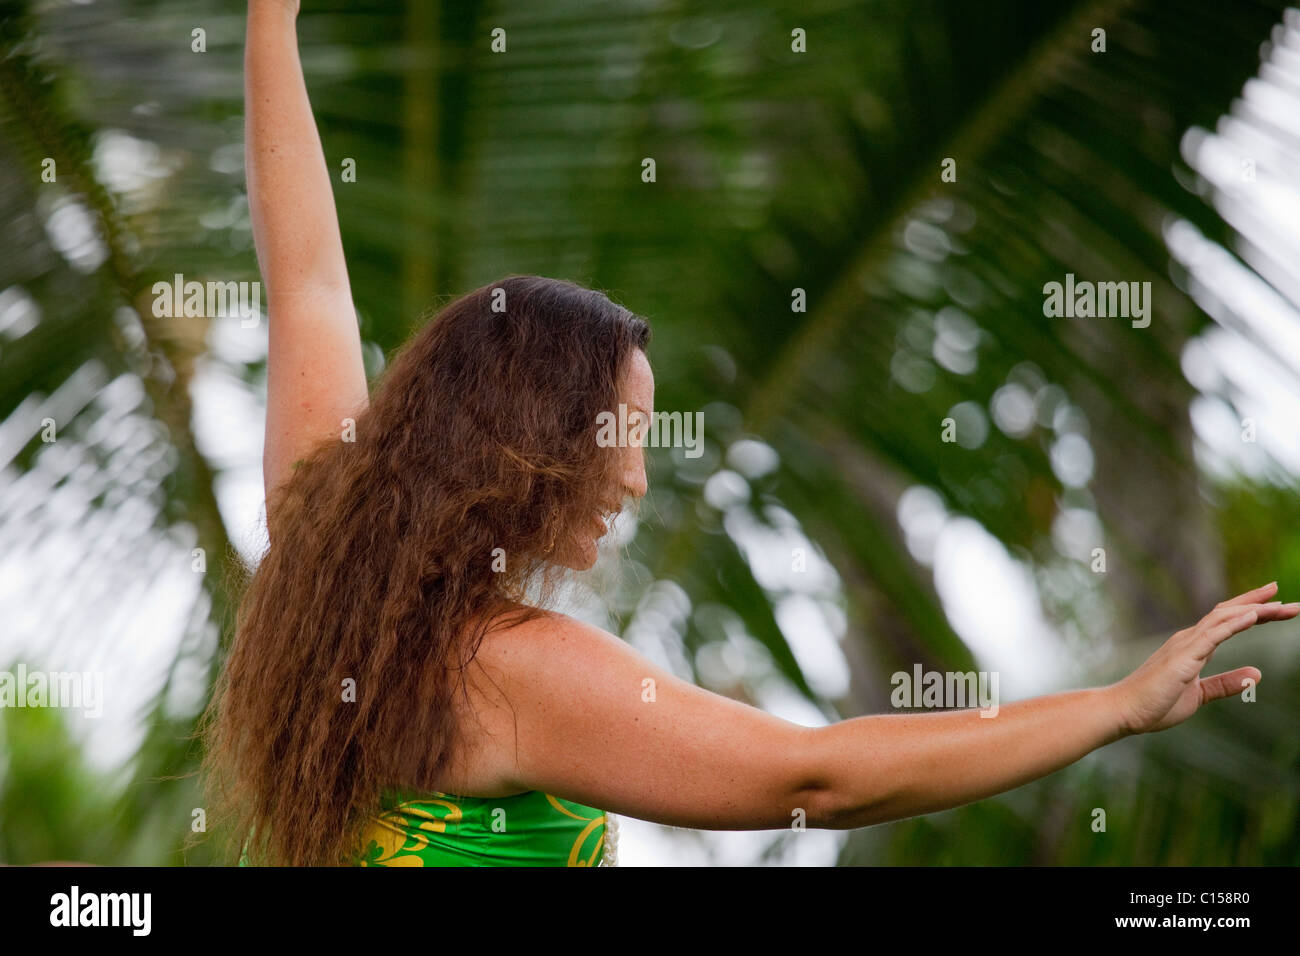 Traditional kahiko hula dancer with at hula performance in Kona, Hawaii. (MR) - Stock Image